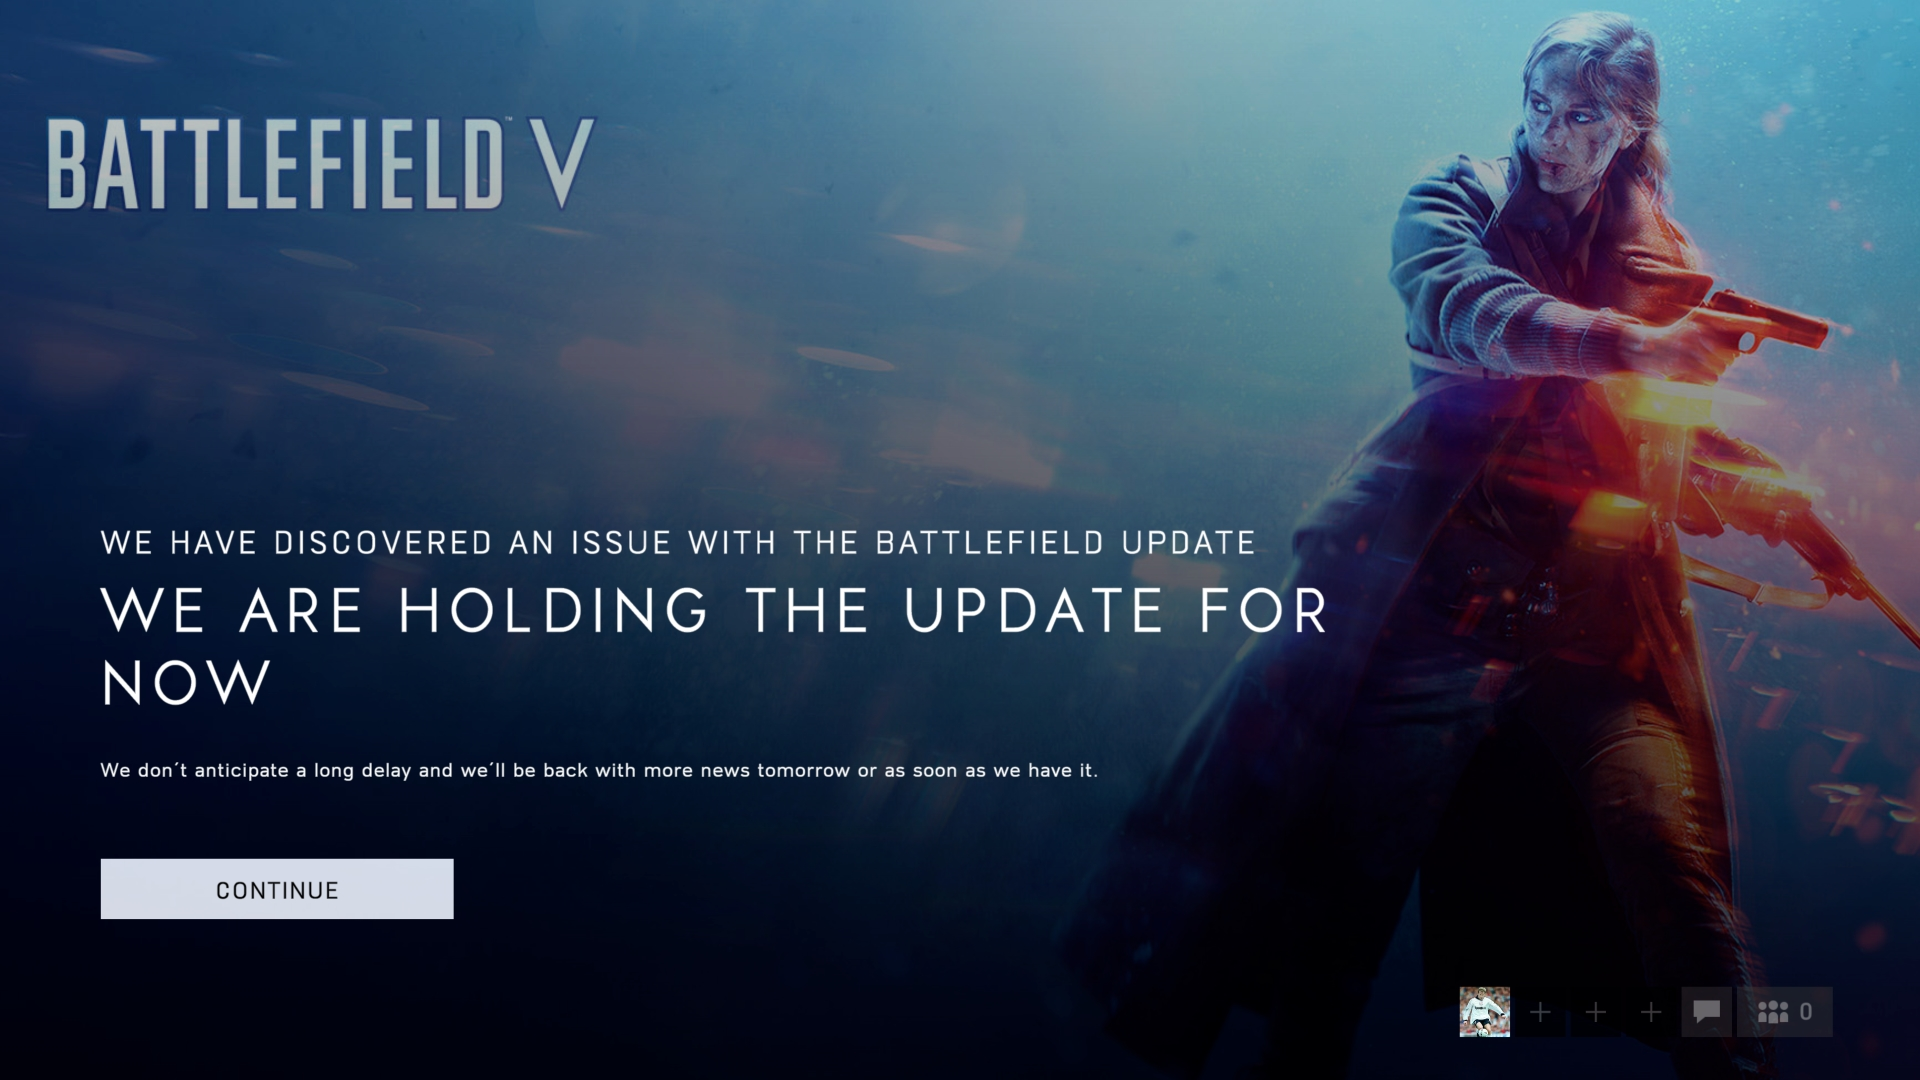 Battlefield 5 update promising up to 50% DXR performance boost now